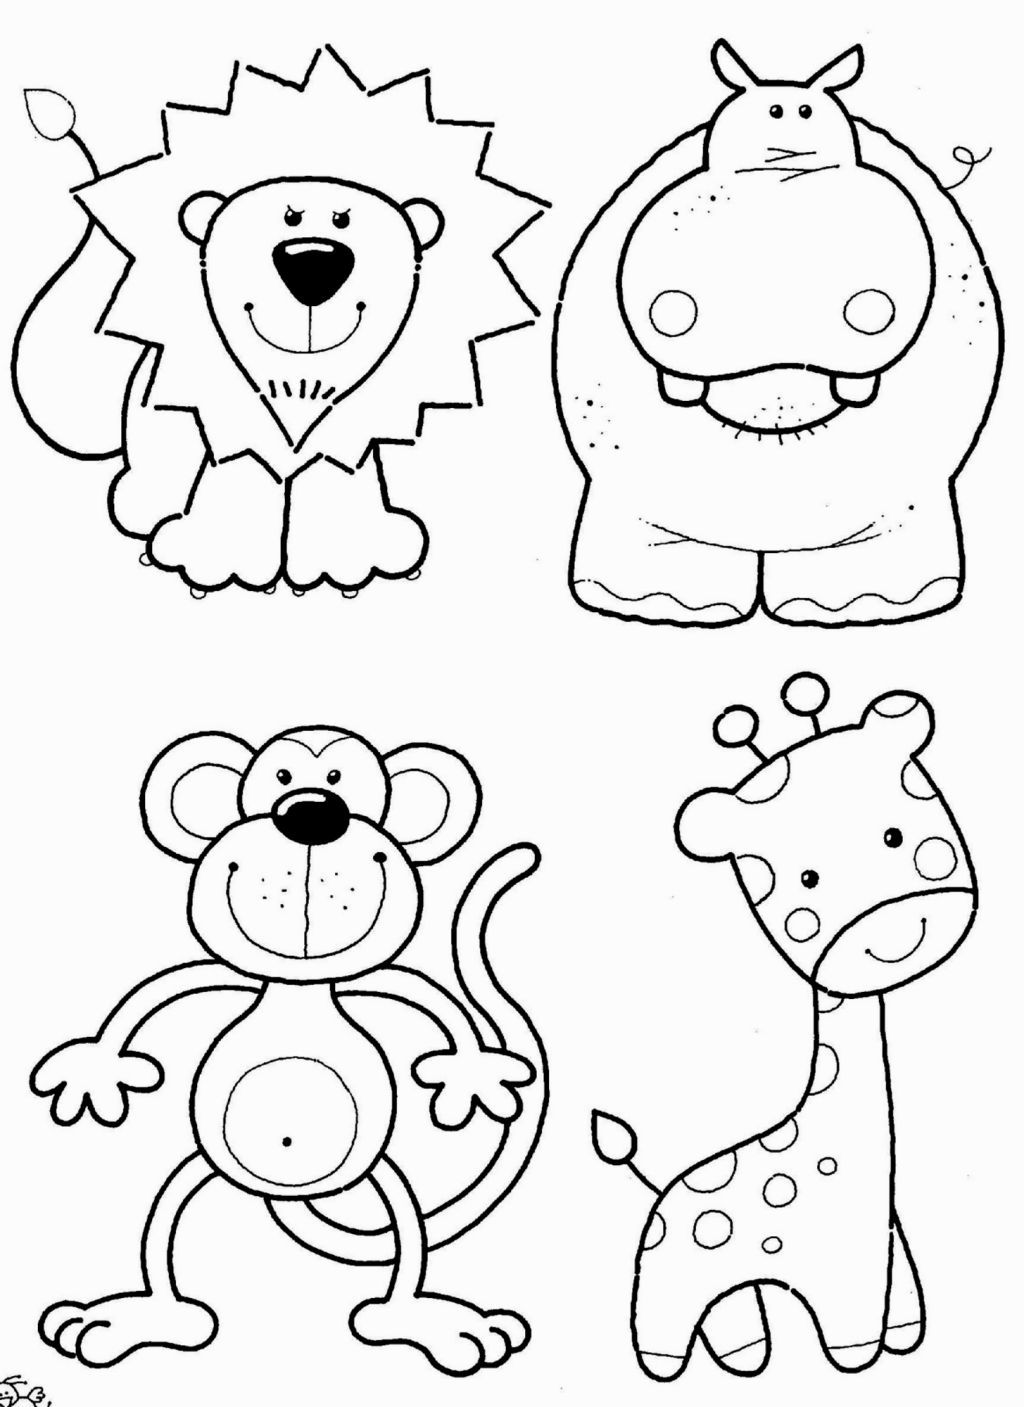 Animals Coloring Games | Coloring Pages | Pinterest